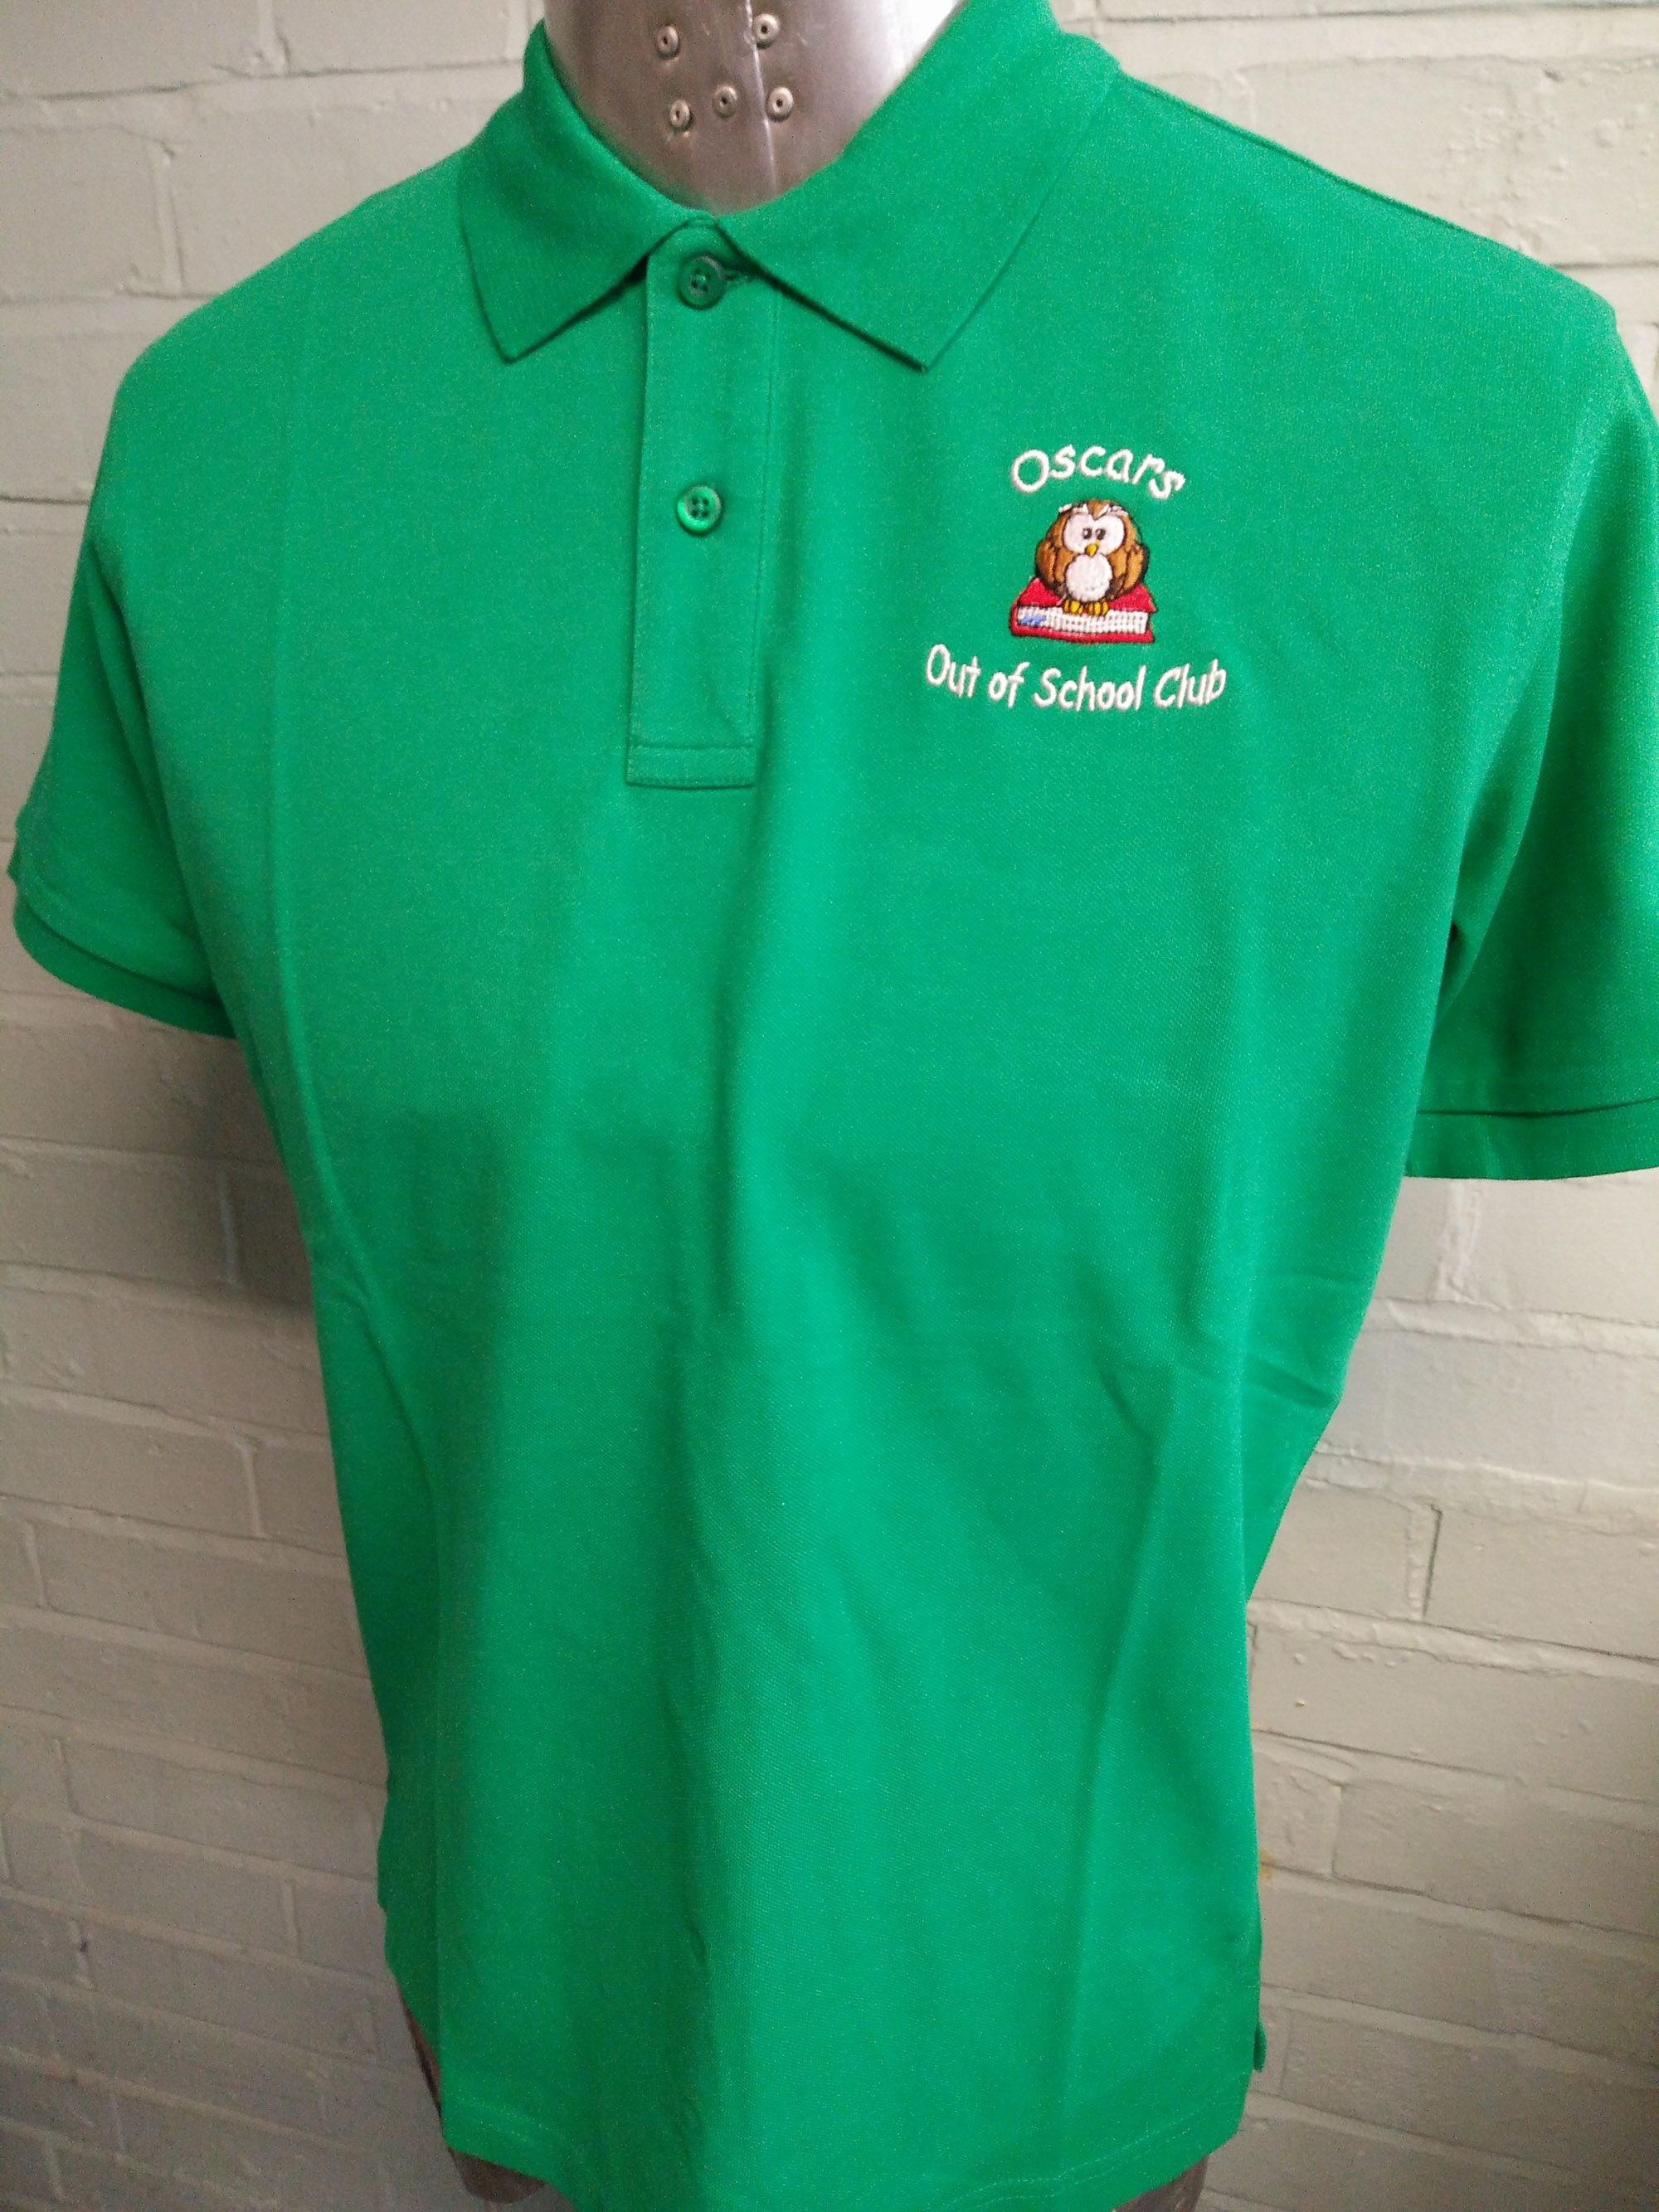 Custom logo embroidered polo shirts for Oscars Out of School.